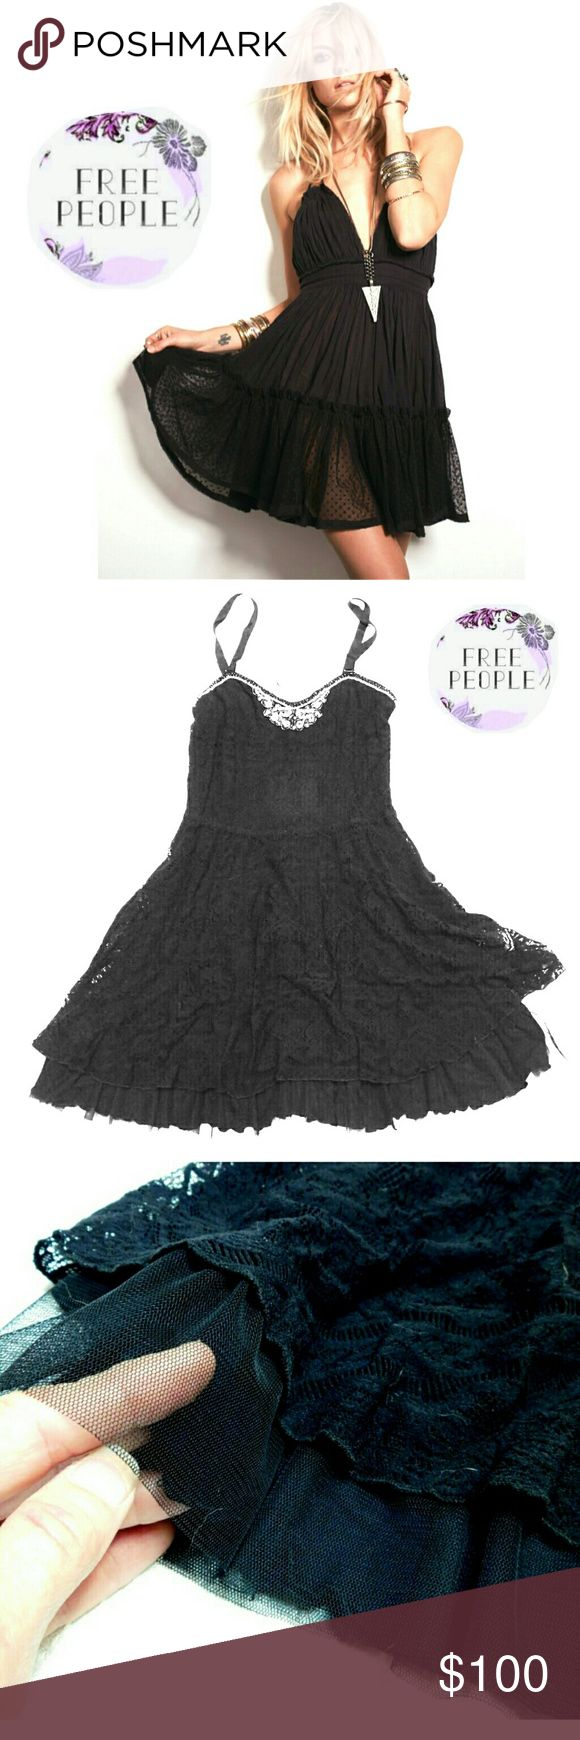 NEW FREE PEOPLE FEMININE ENDLESS SUMMER DRESS NEW FREE PEOPLE FEMININE & FRILLY BLACK ENDLESS SUMMER DRESS Image for Similarity Only F697Z557 0010 Size M Beautiful Feminine & Flowing 3 Layers of Stretchy Lace on Top of Lined Slip Edged with Lace &